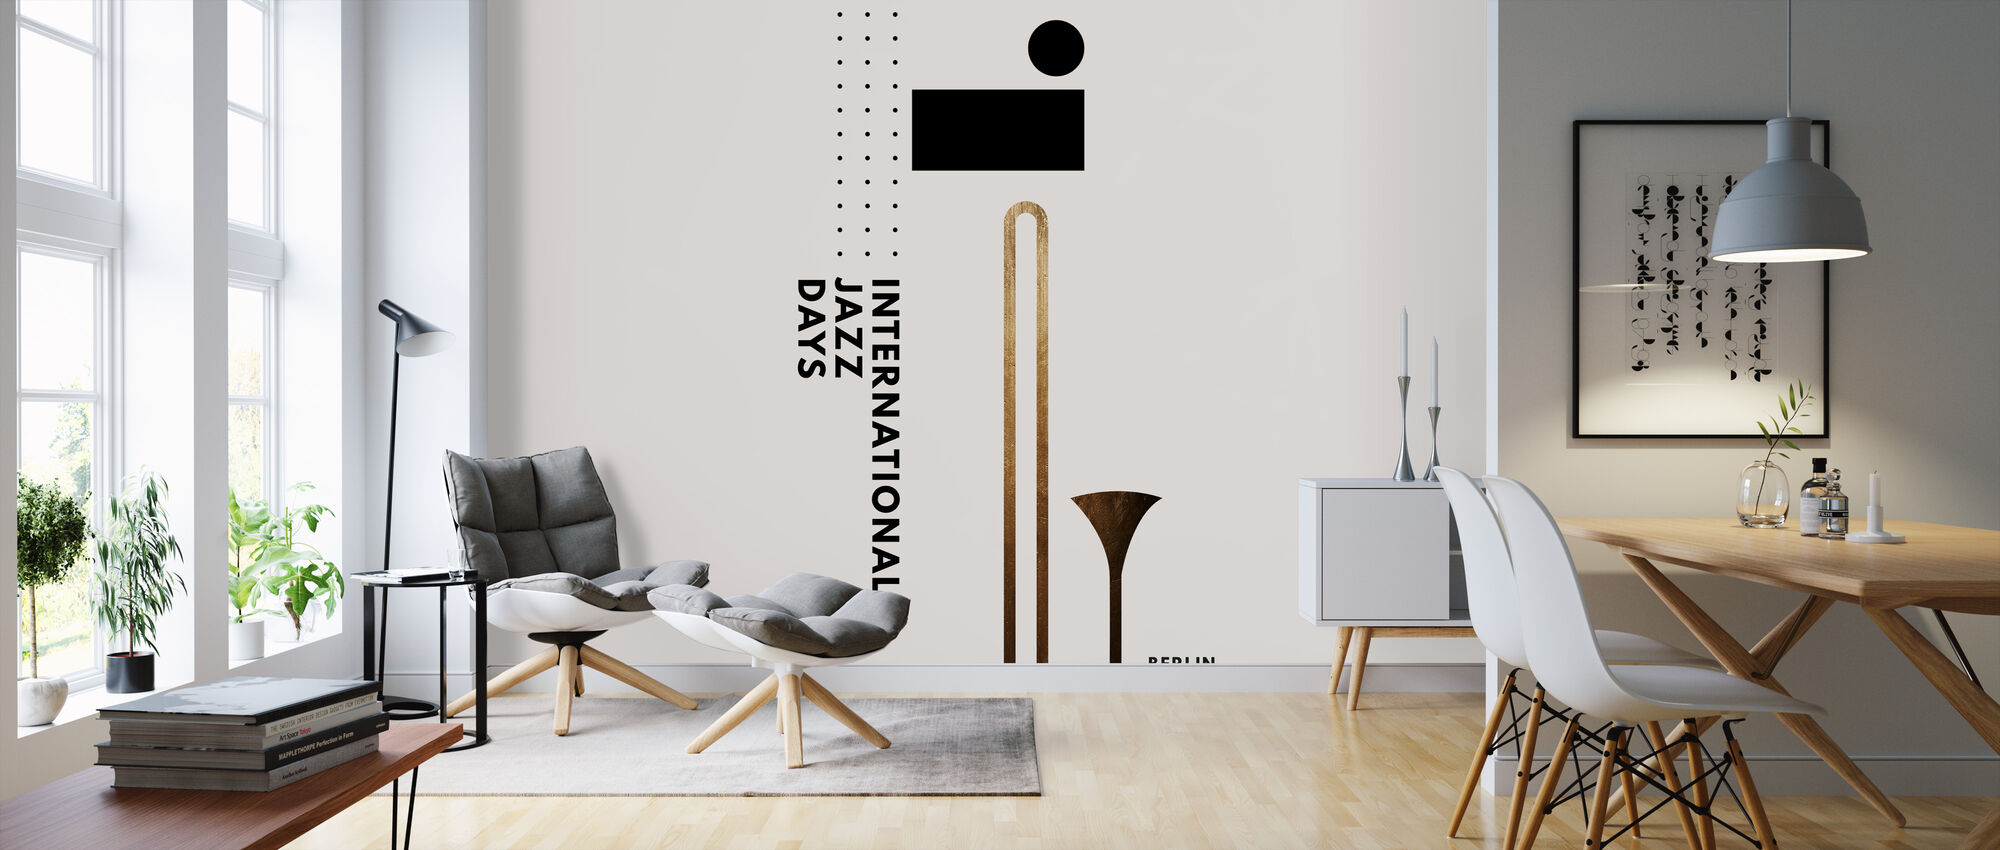 Jazzy Days III - Wallpaper - Living Room